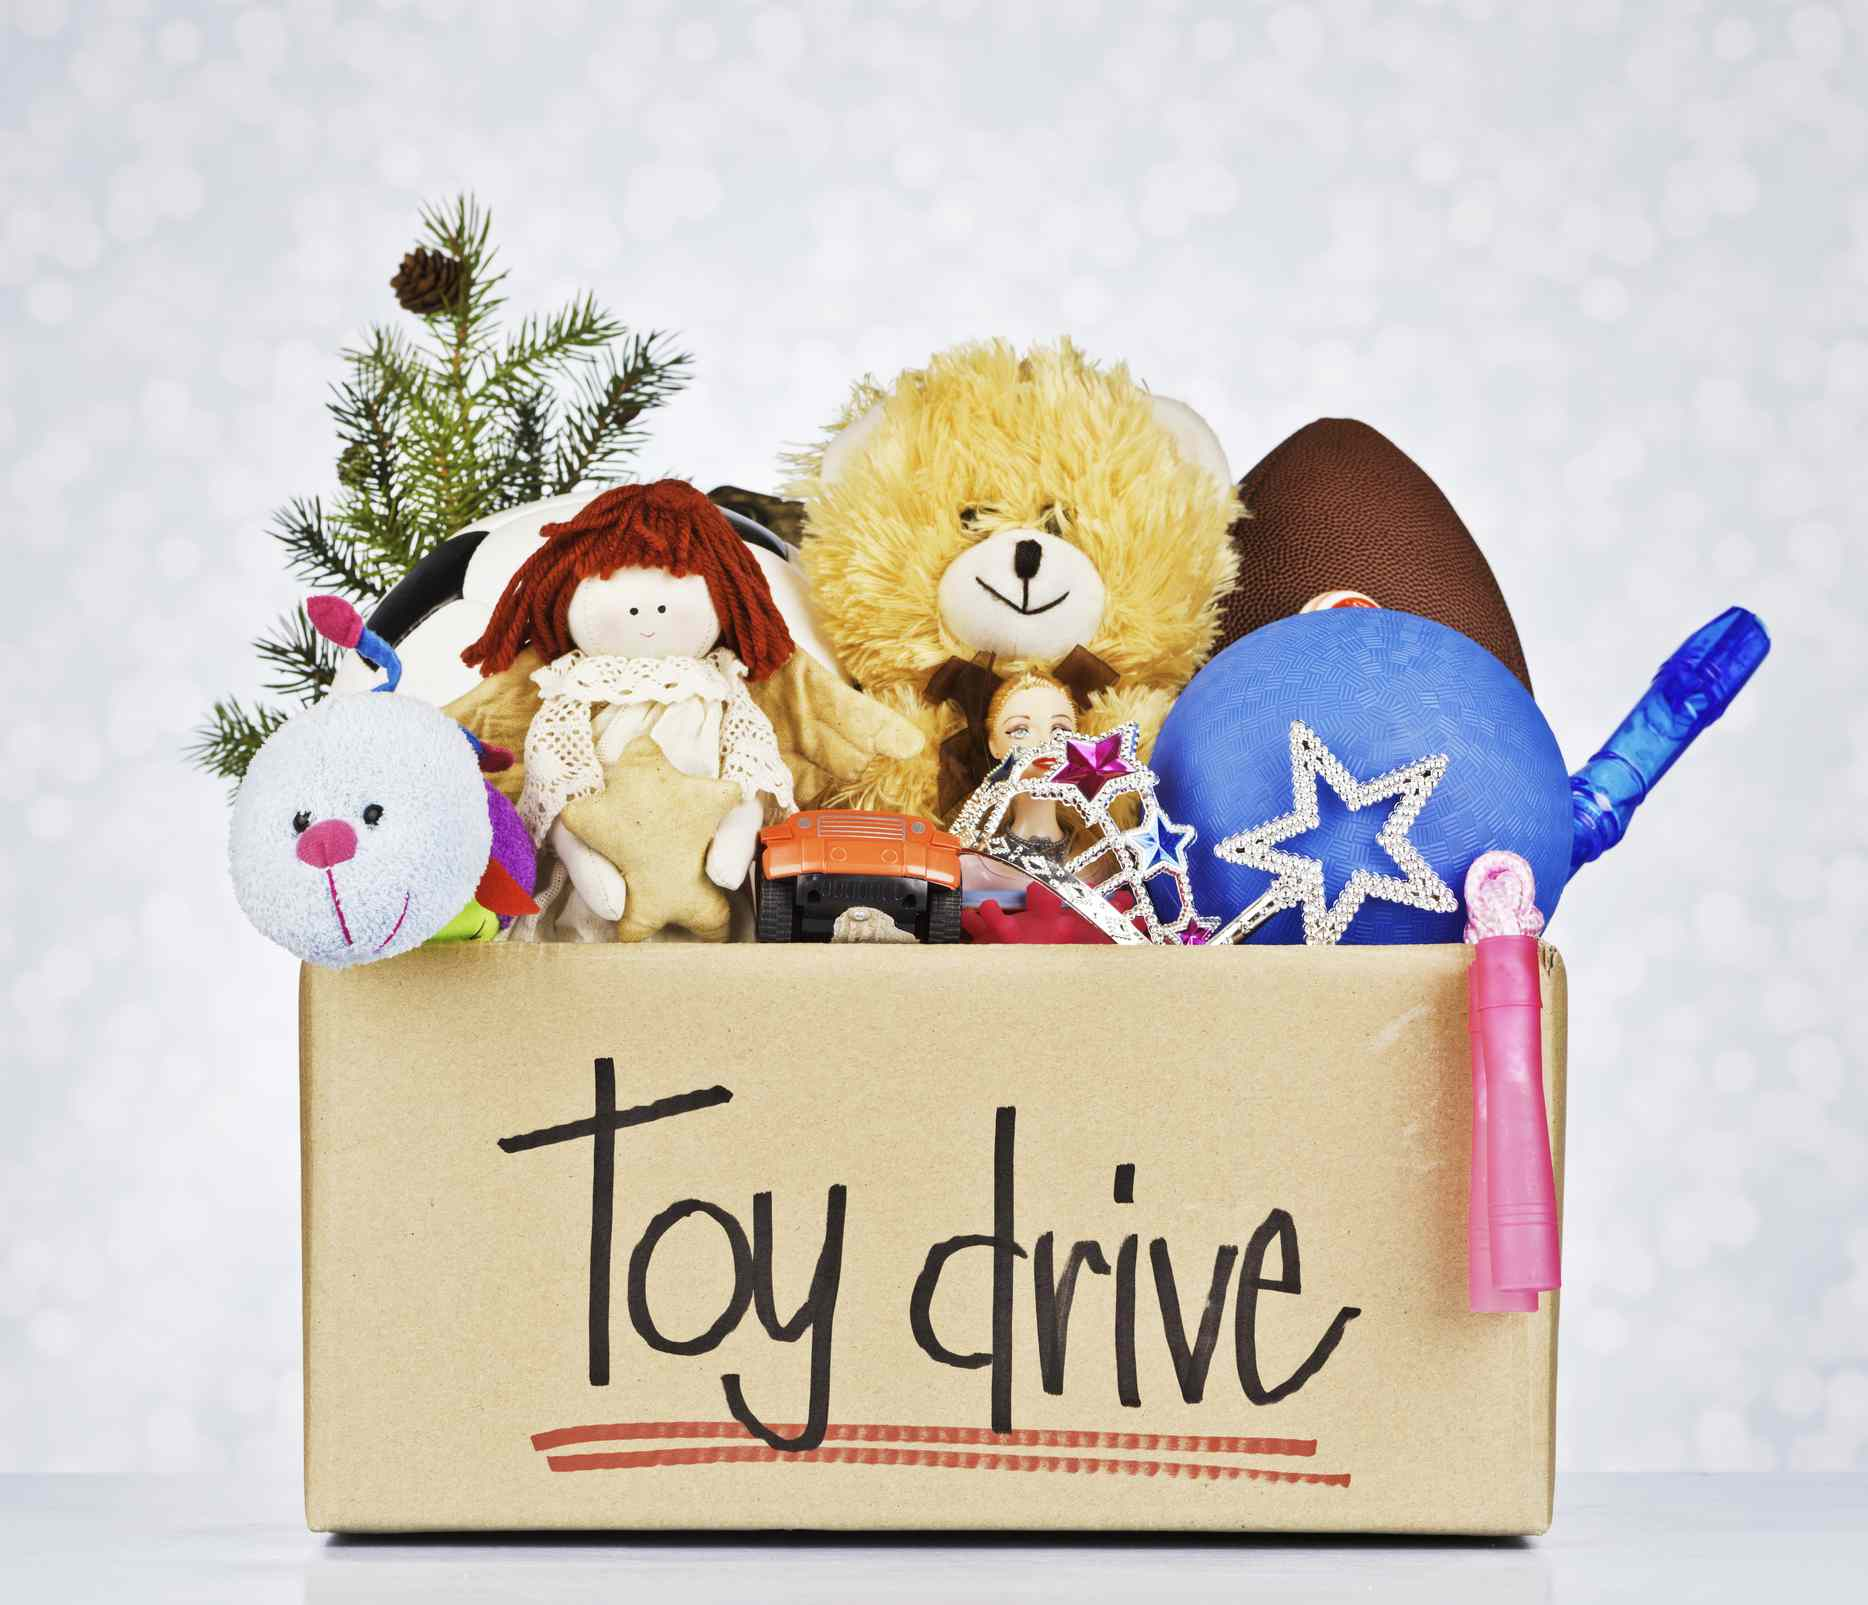 Christmas gifts in a toy drive box